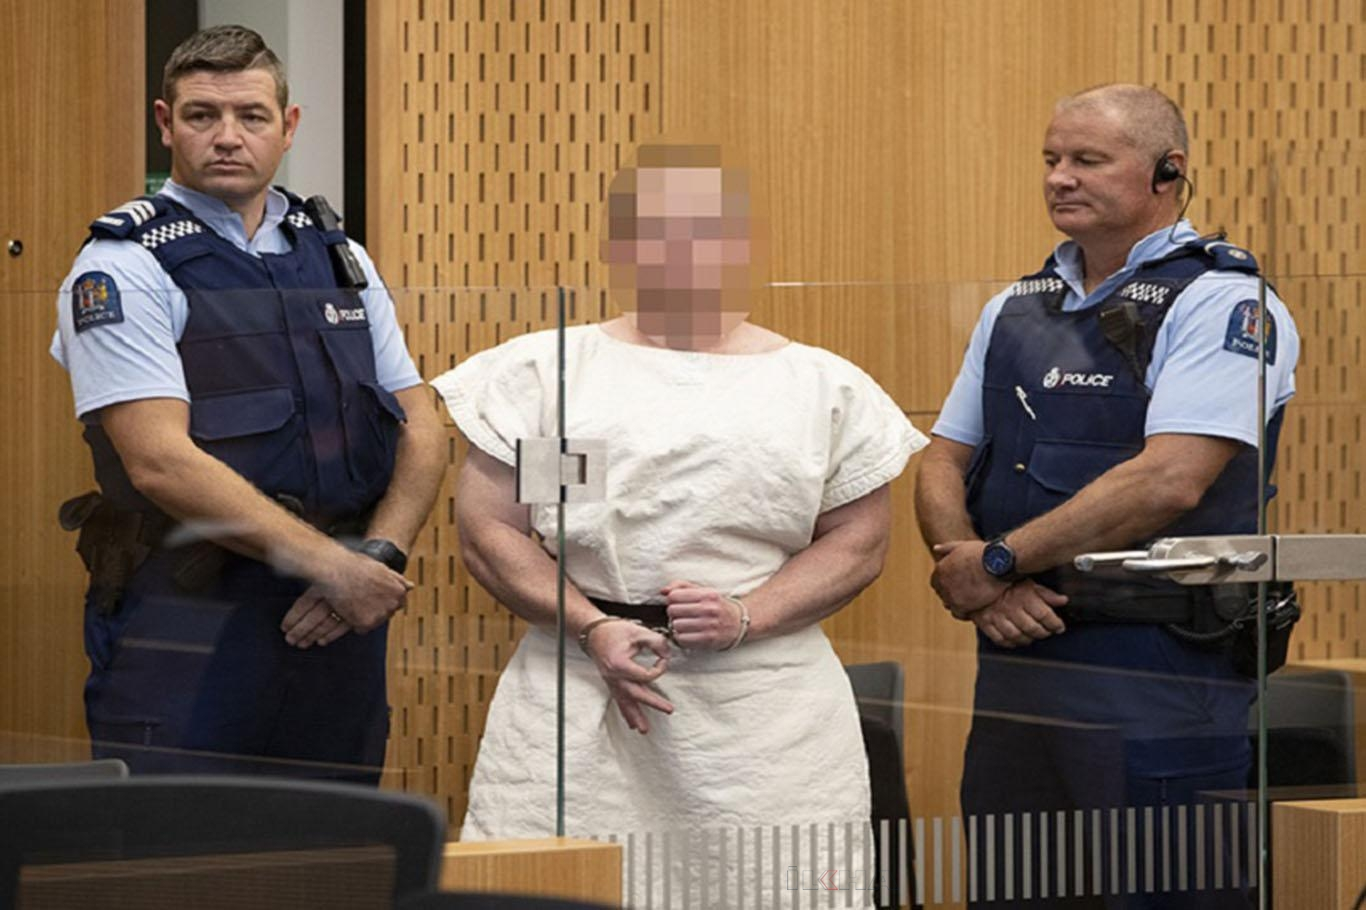 New Zealand Gunman